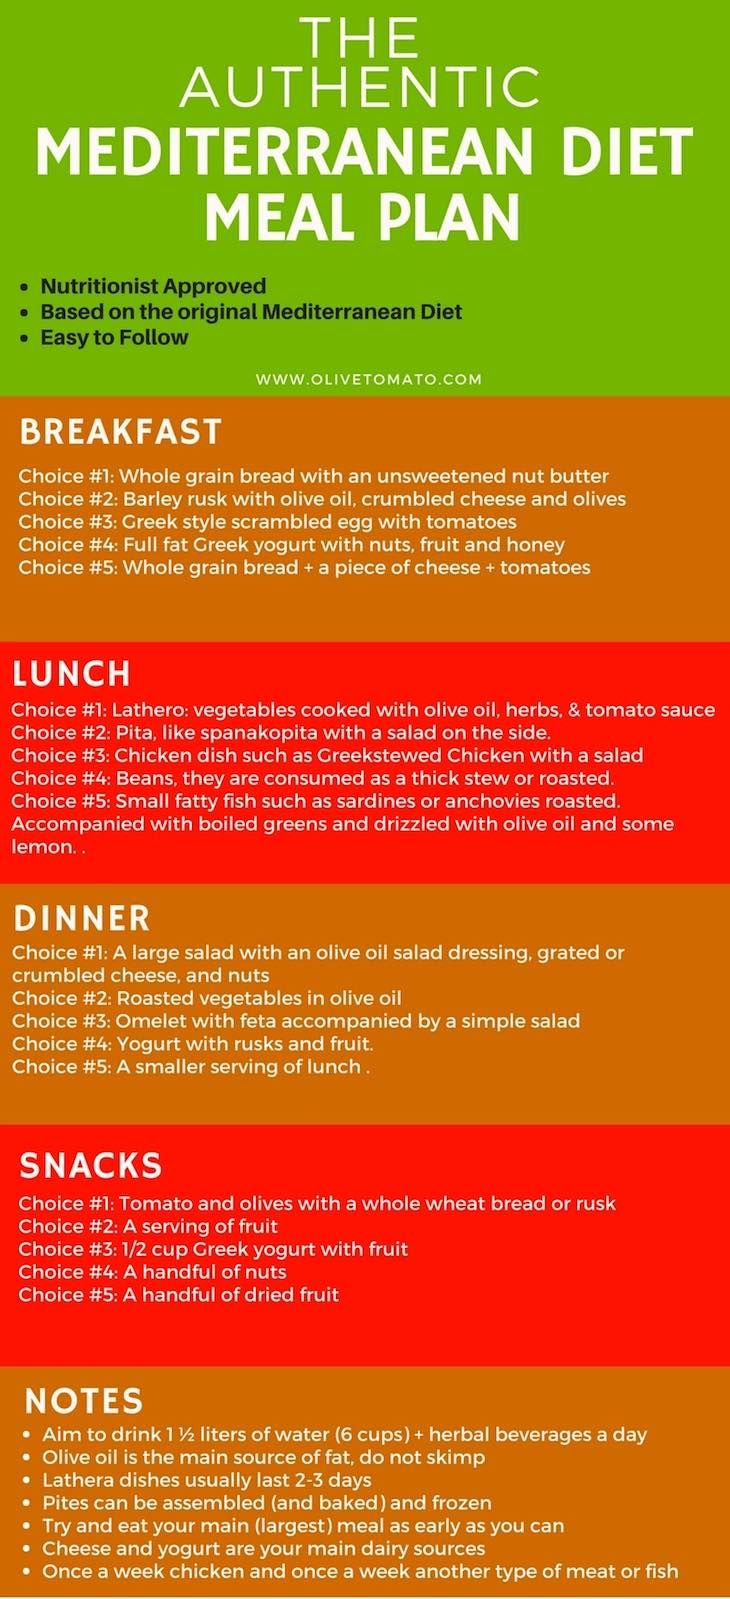 The Authentic Mediterranean Diet Meal Plan And Menu Olive Tomato Mediterranean Diet Meal Plan Diet Plan Menu Mediterranean Diet Recipes